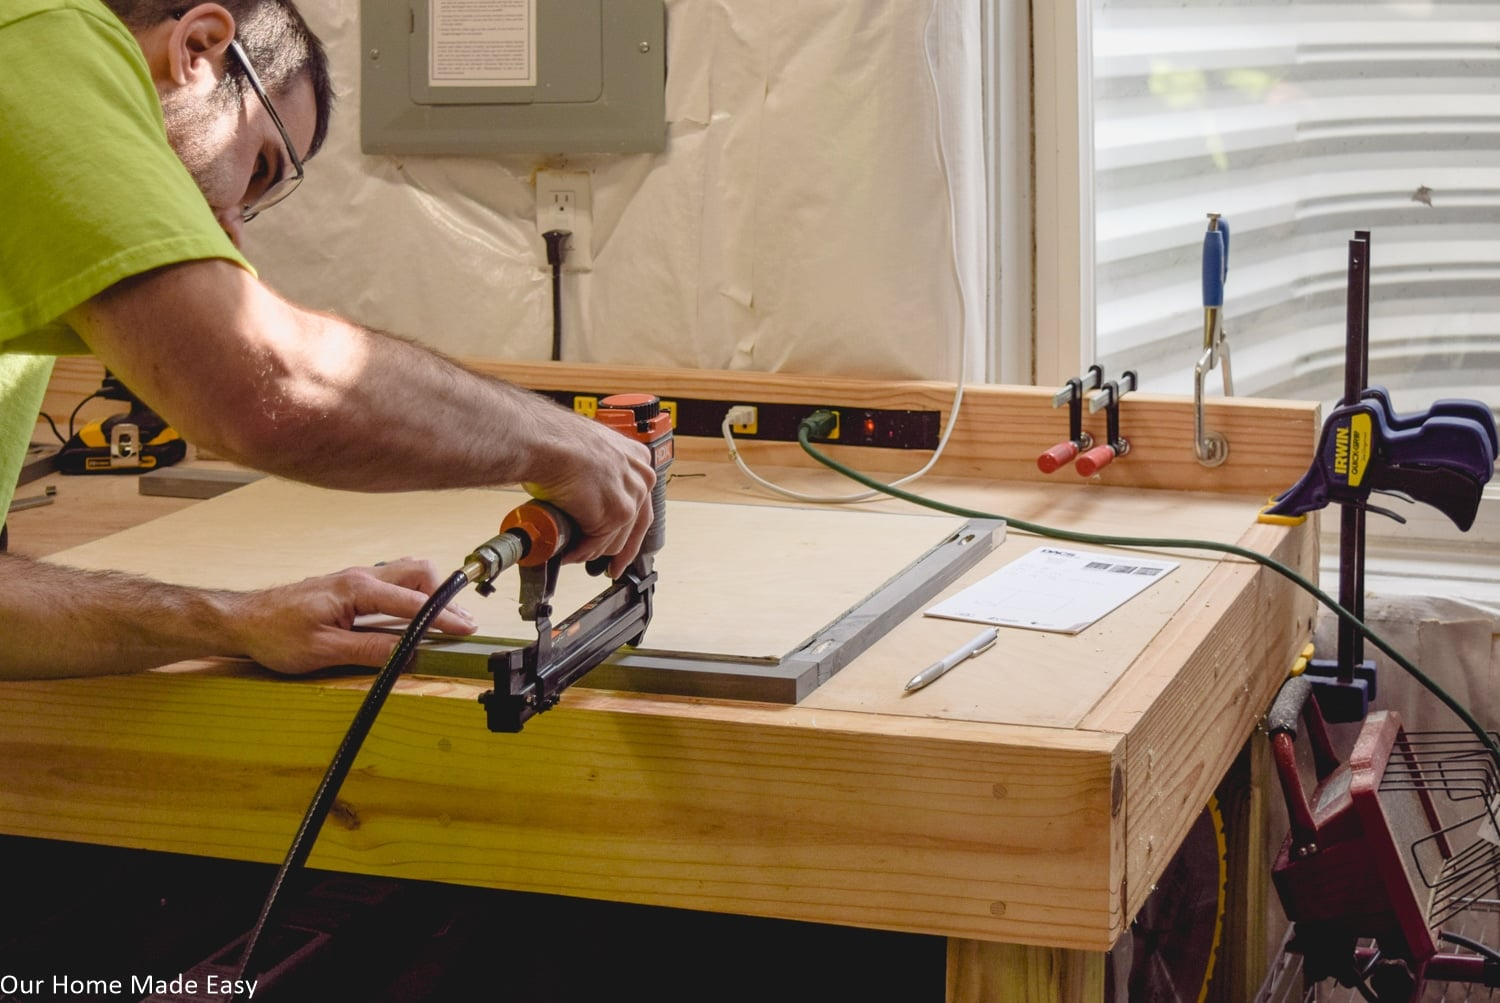 Sometimes DIY projects fail because you don't have the skills needed, like for complicated woodworking projects